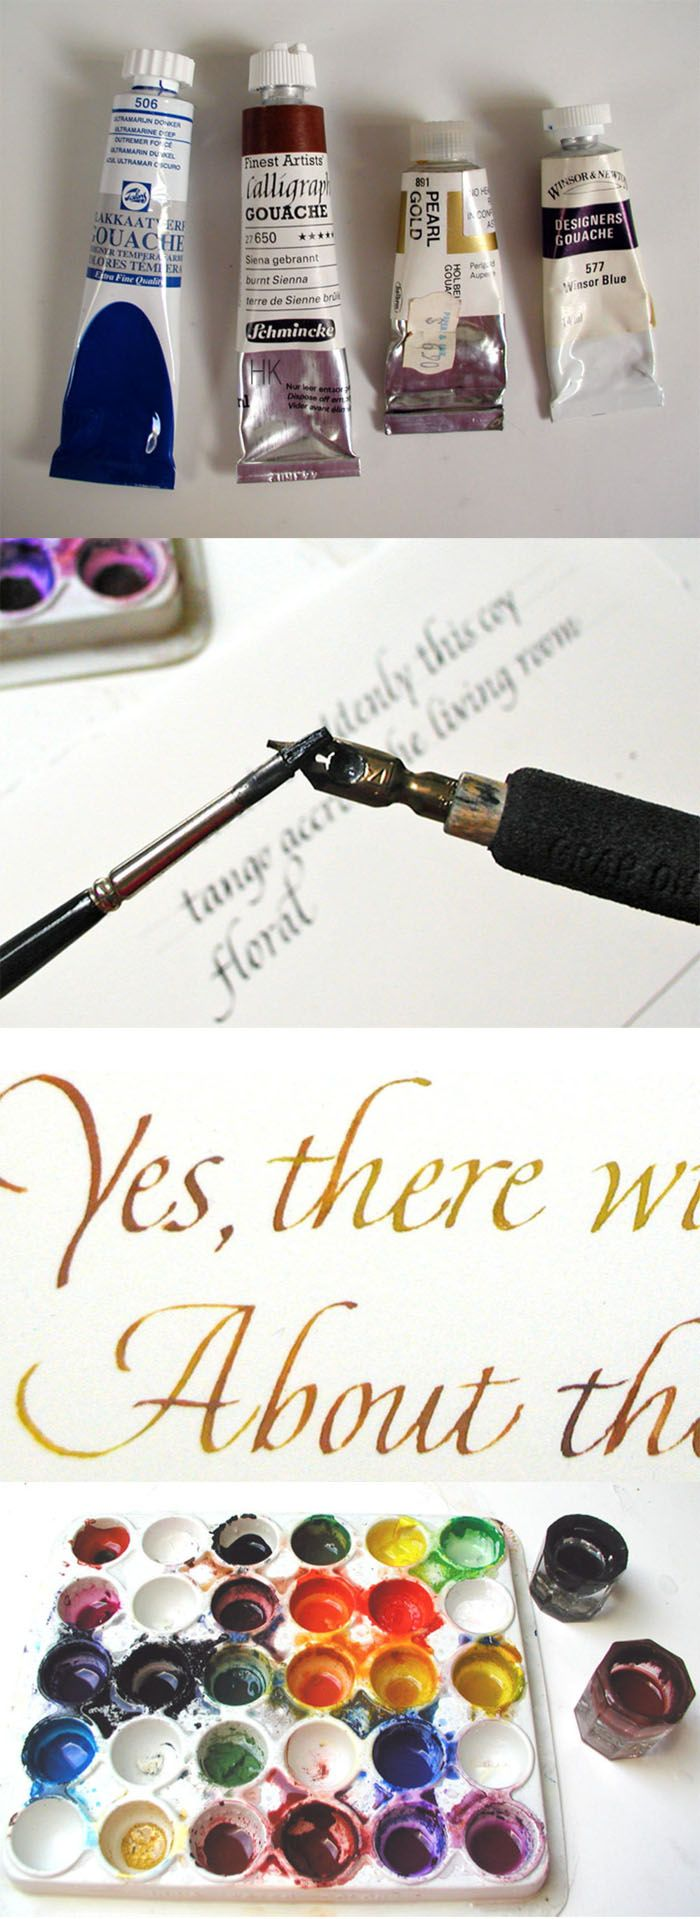 Calligraphy: Working With Gouache ( http://artid.com/members/calligraphy/blog/post/1483-working-with-gouache )